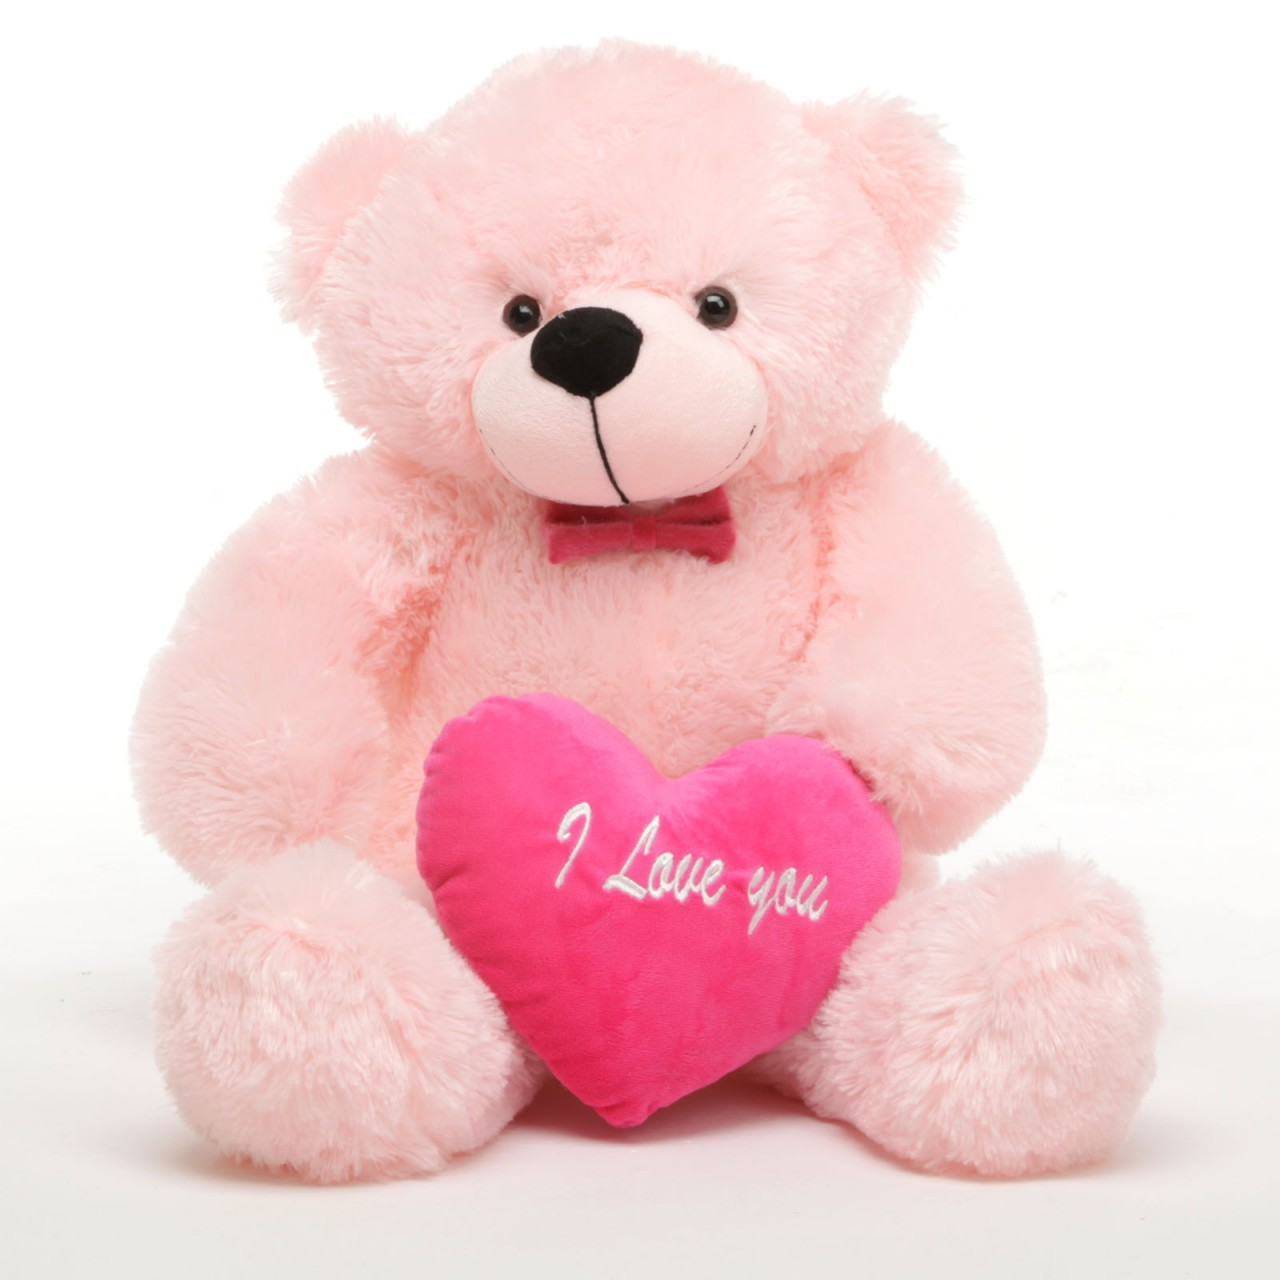 images Lovely and Cute Pink Teddy Bear wallpaper photos 34605180 1280x1280